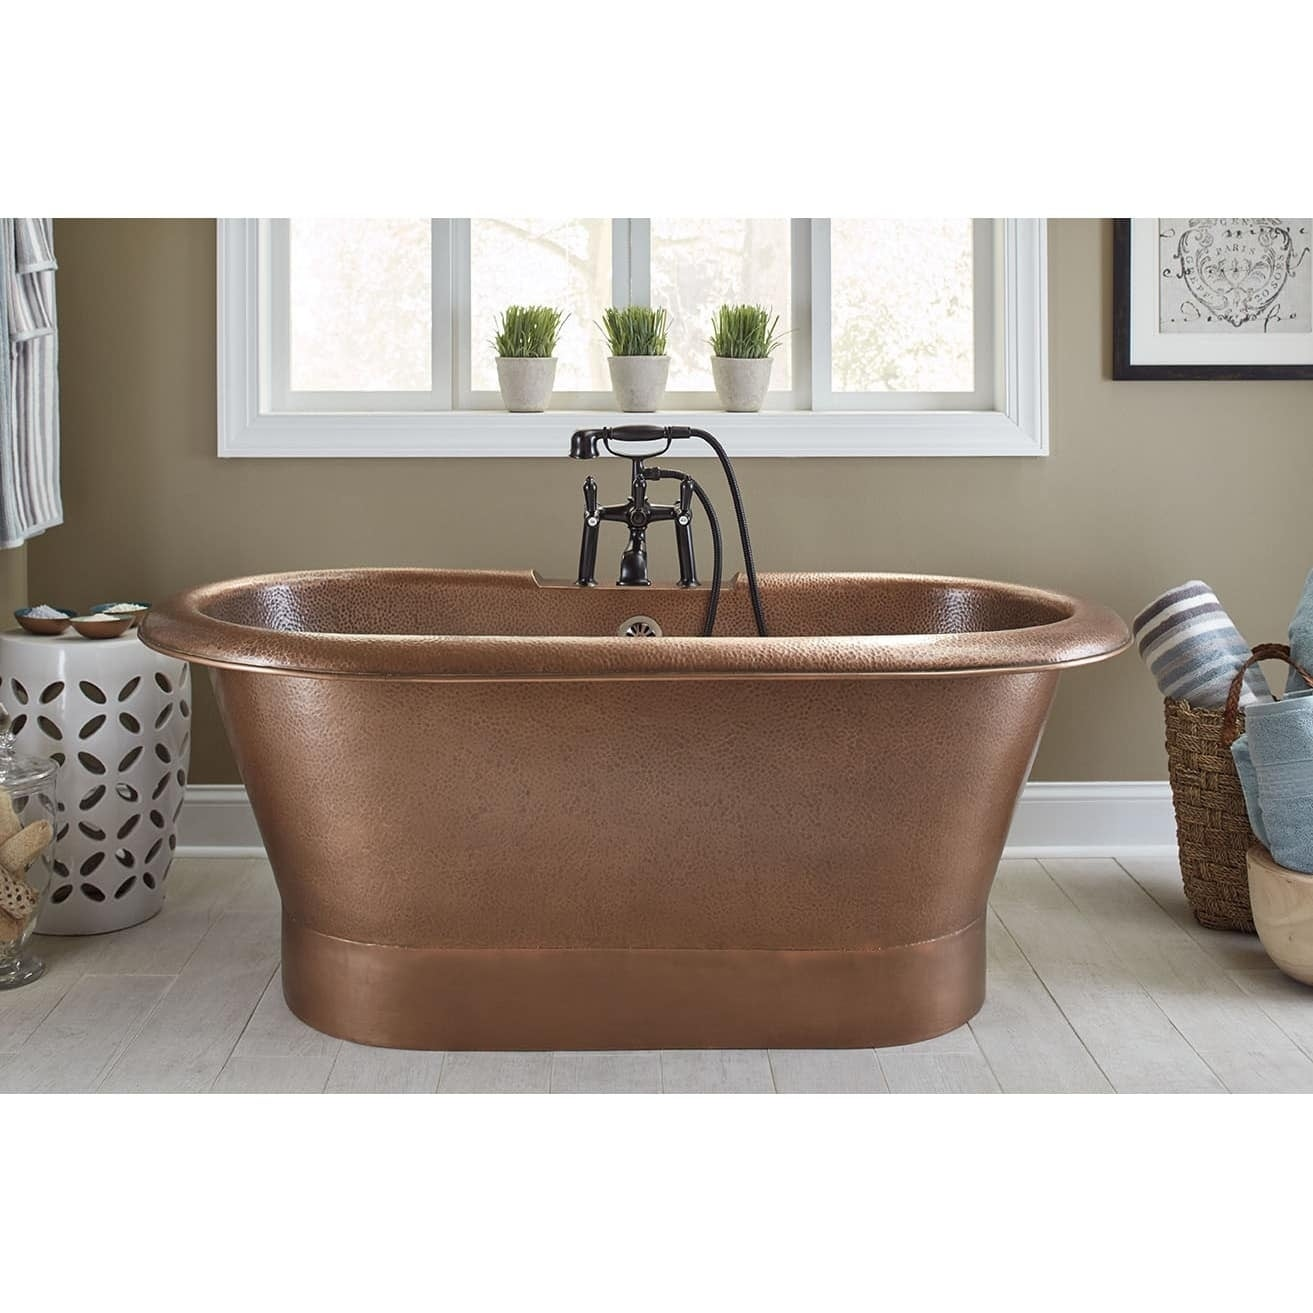 Sinkology Thales Copper Bathtub With Overflow 2 Hole Faucet Deck In Antique  Copper   Brown